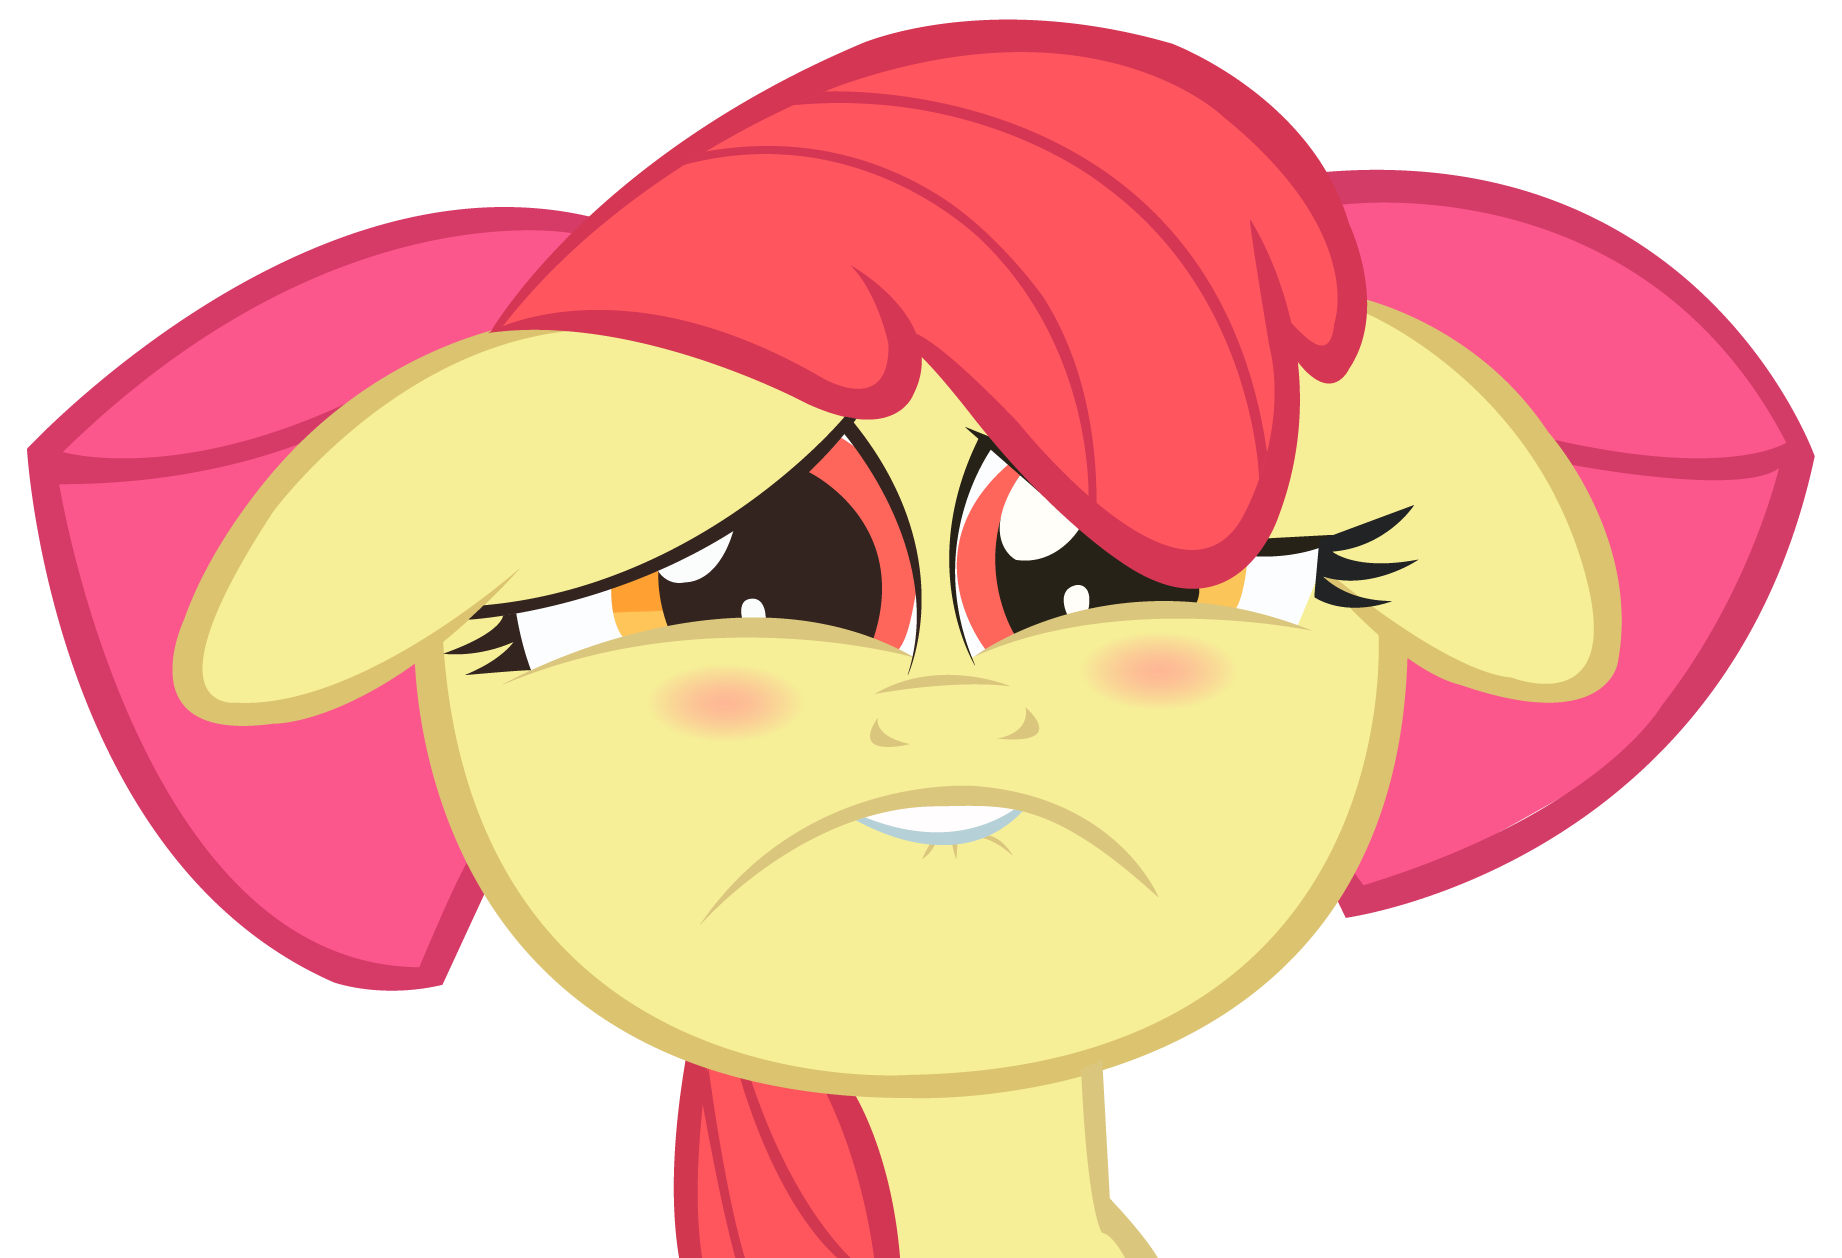 Applebloom sadface vector by wintrparkgrl on DeviantArt: wintrparkgrl.deviantart.com/art/Applebloom-sadface-vector-270815640